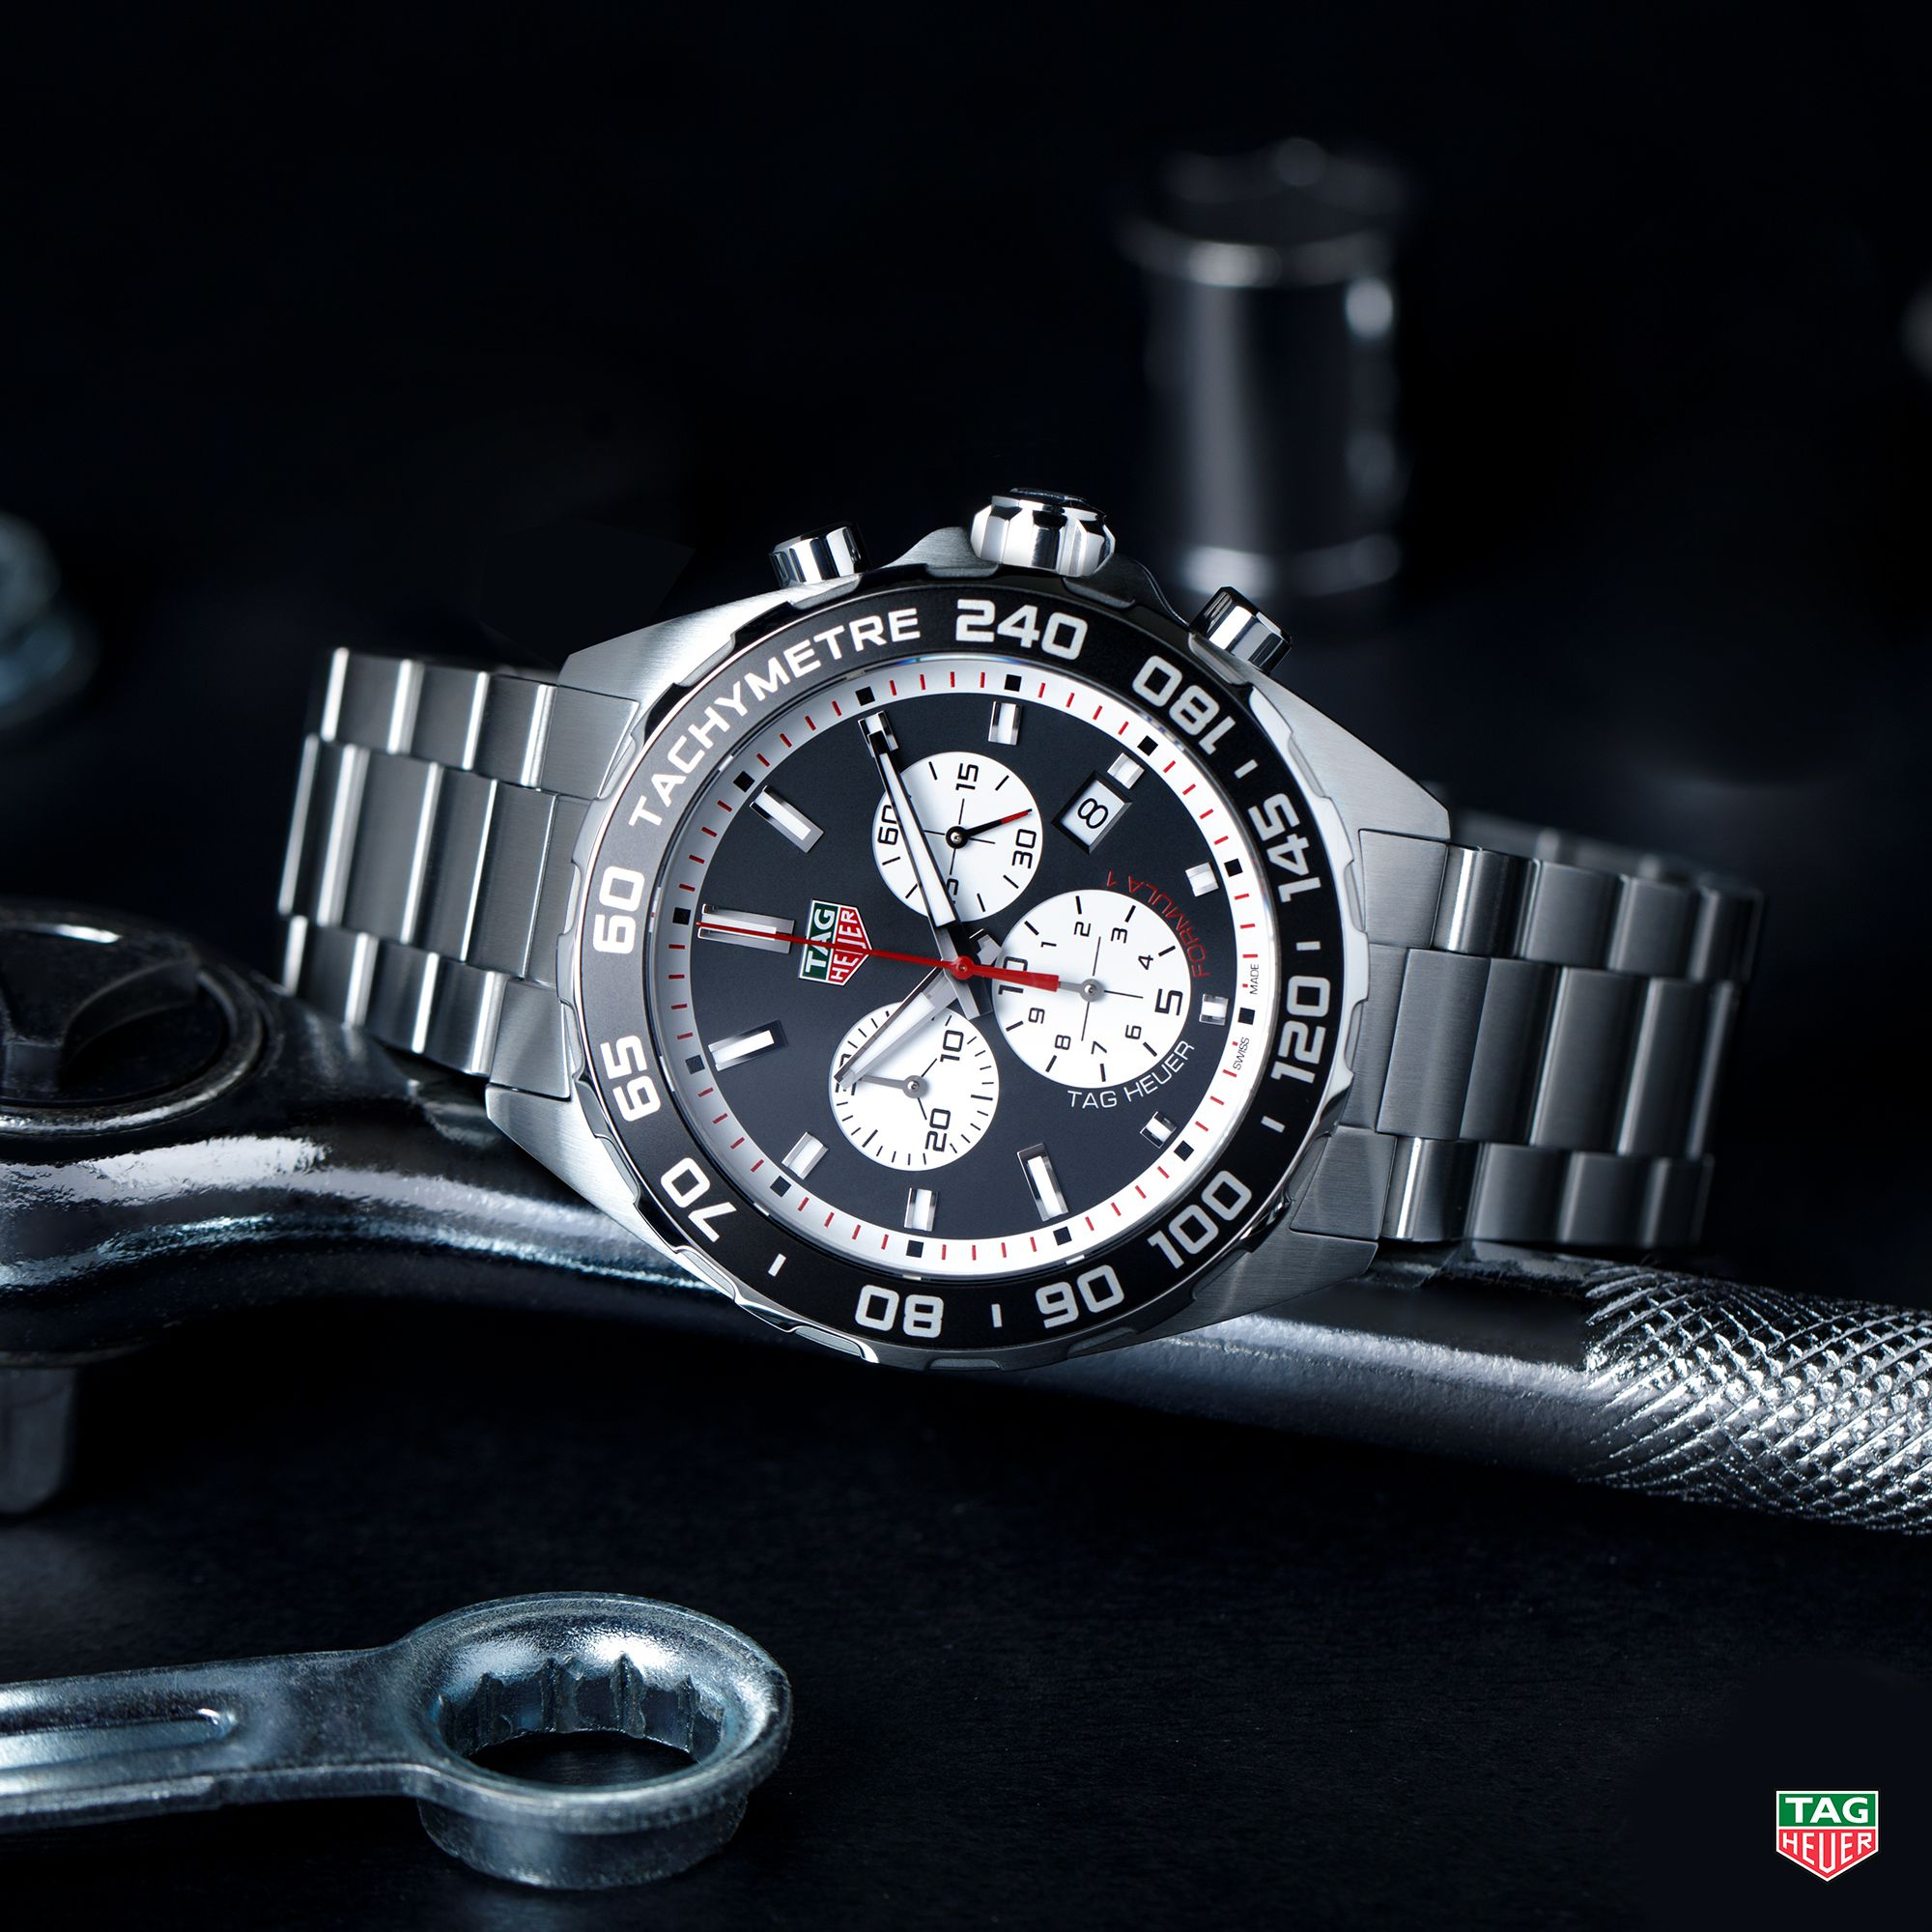 f5a678b9dd5 Turbocharge your life with the TAG Heuer Formula 1.   DontCrackUnderPresssure  TAGHeuerIsMotorRacing  TAGHeuerFormula1  Steel